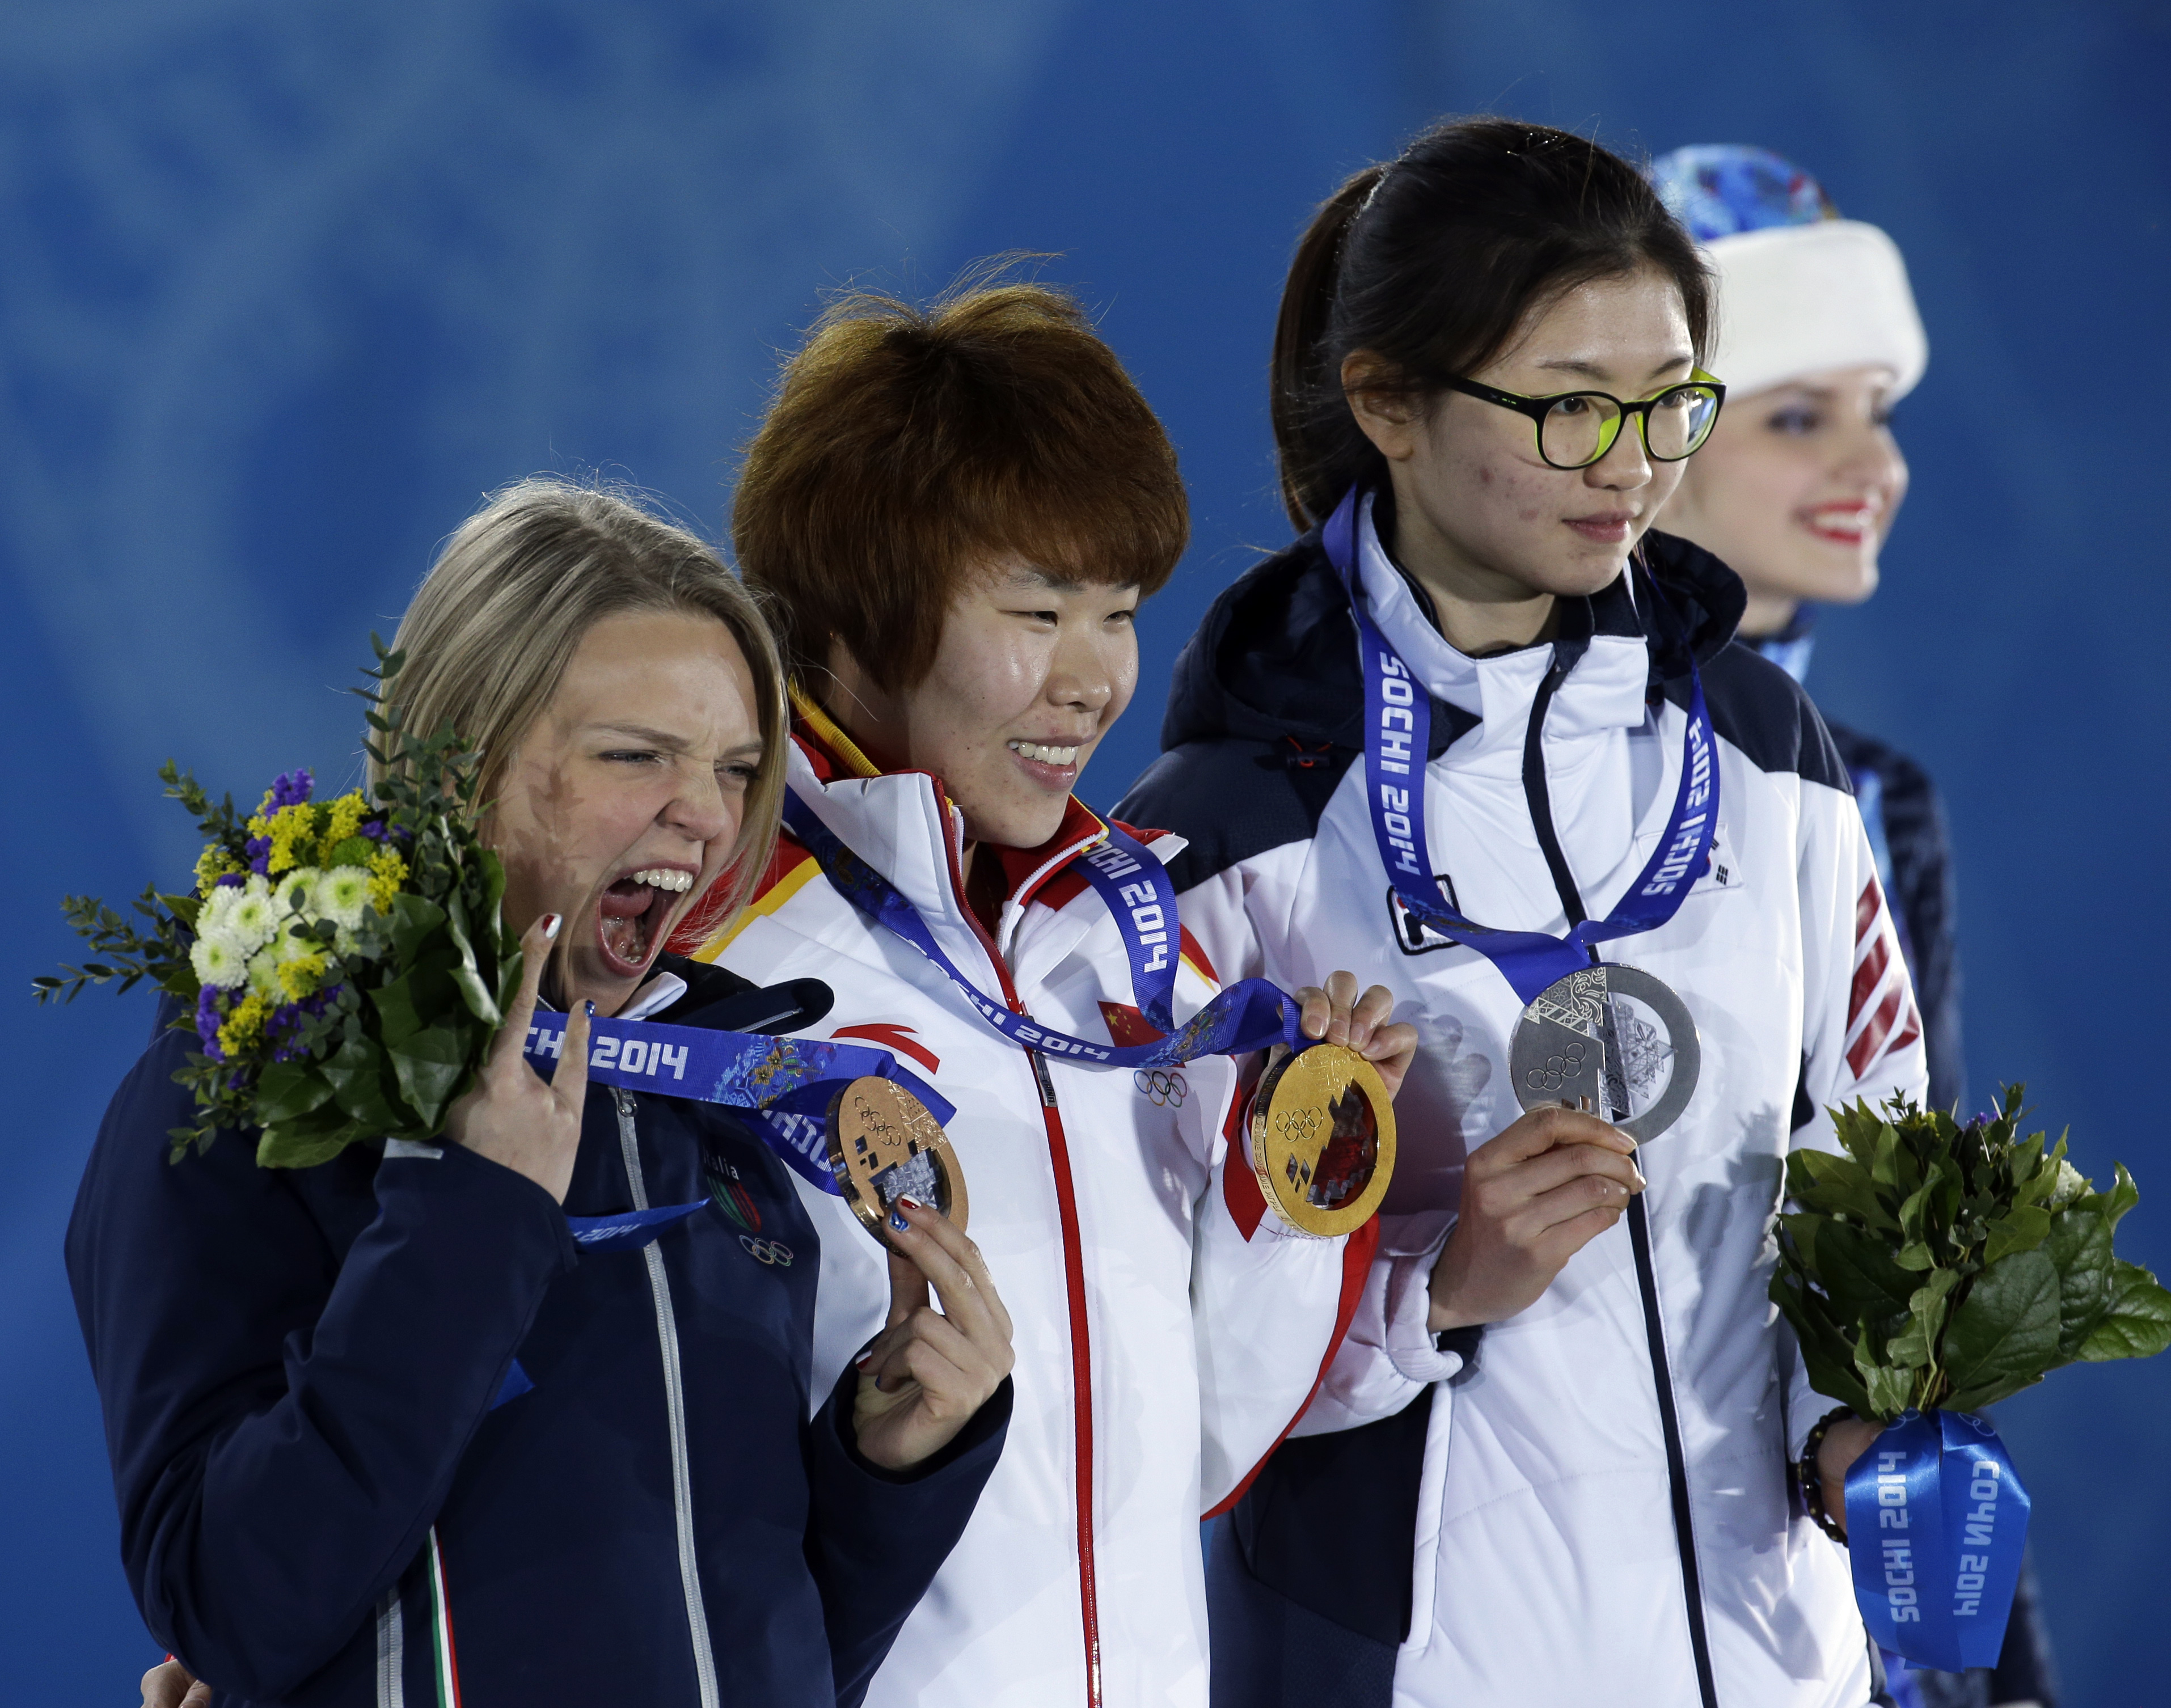 Women's 1,500-meter short track speedskating medalists, from left, Italy's Arianna Fontana, bronze, China's Zhou Yang, gold, and South Korea's Shim Suk-hee, silver, pose with their medals at the 2014 Winter Olympics in Sochi, Russia, Saturday, Feb. 15, 2014.  (AP Photo/Morry Gash)